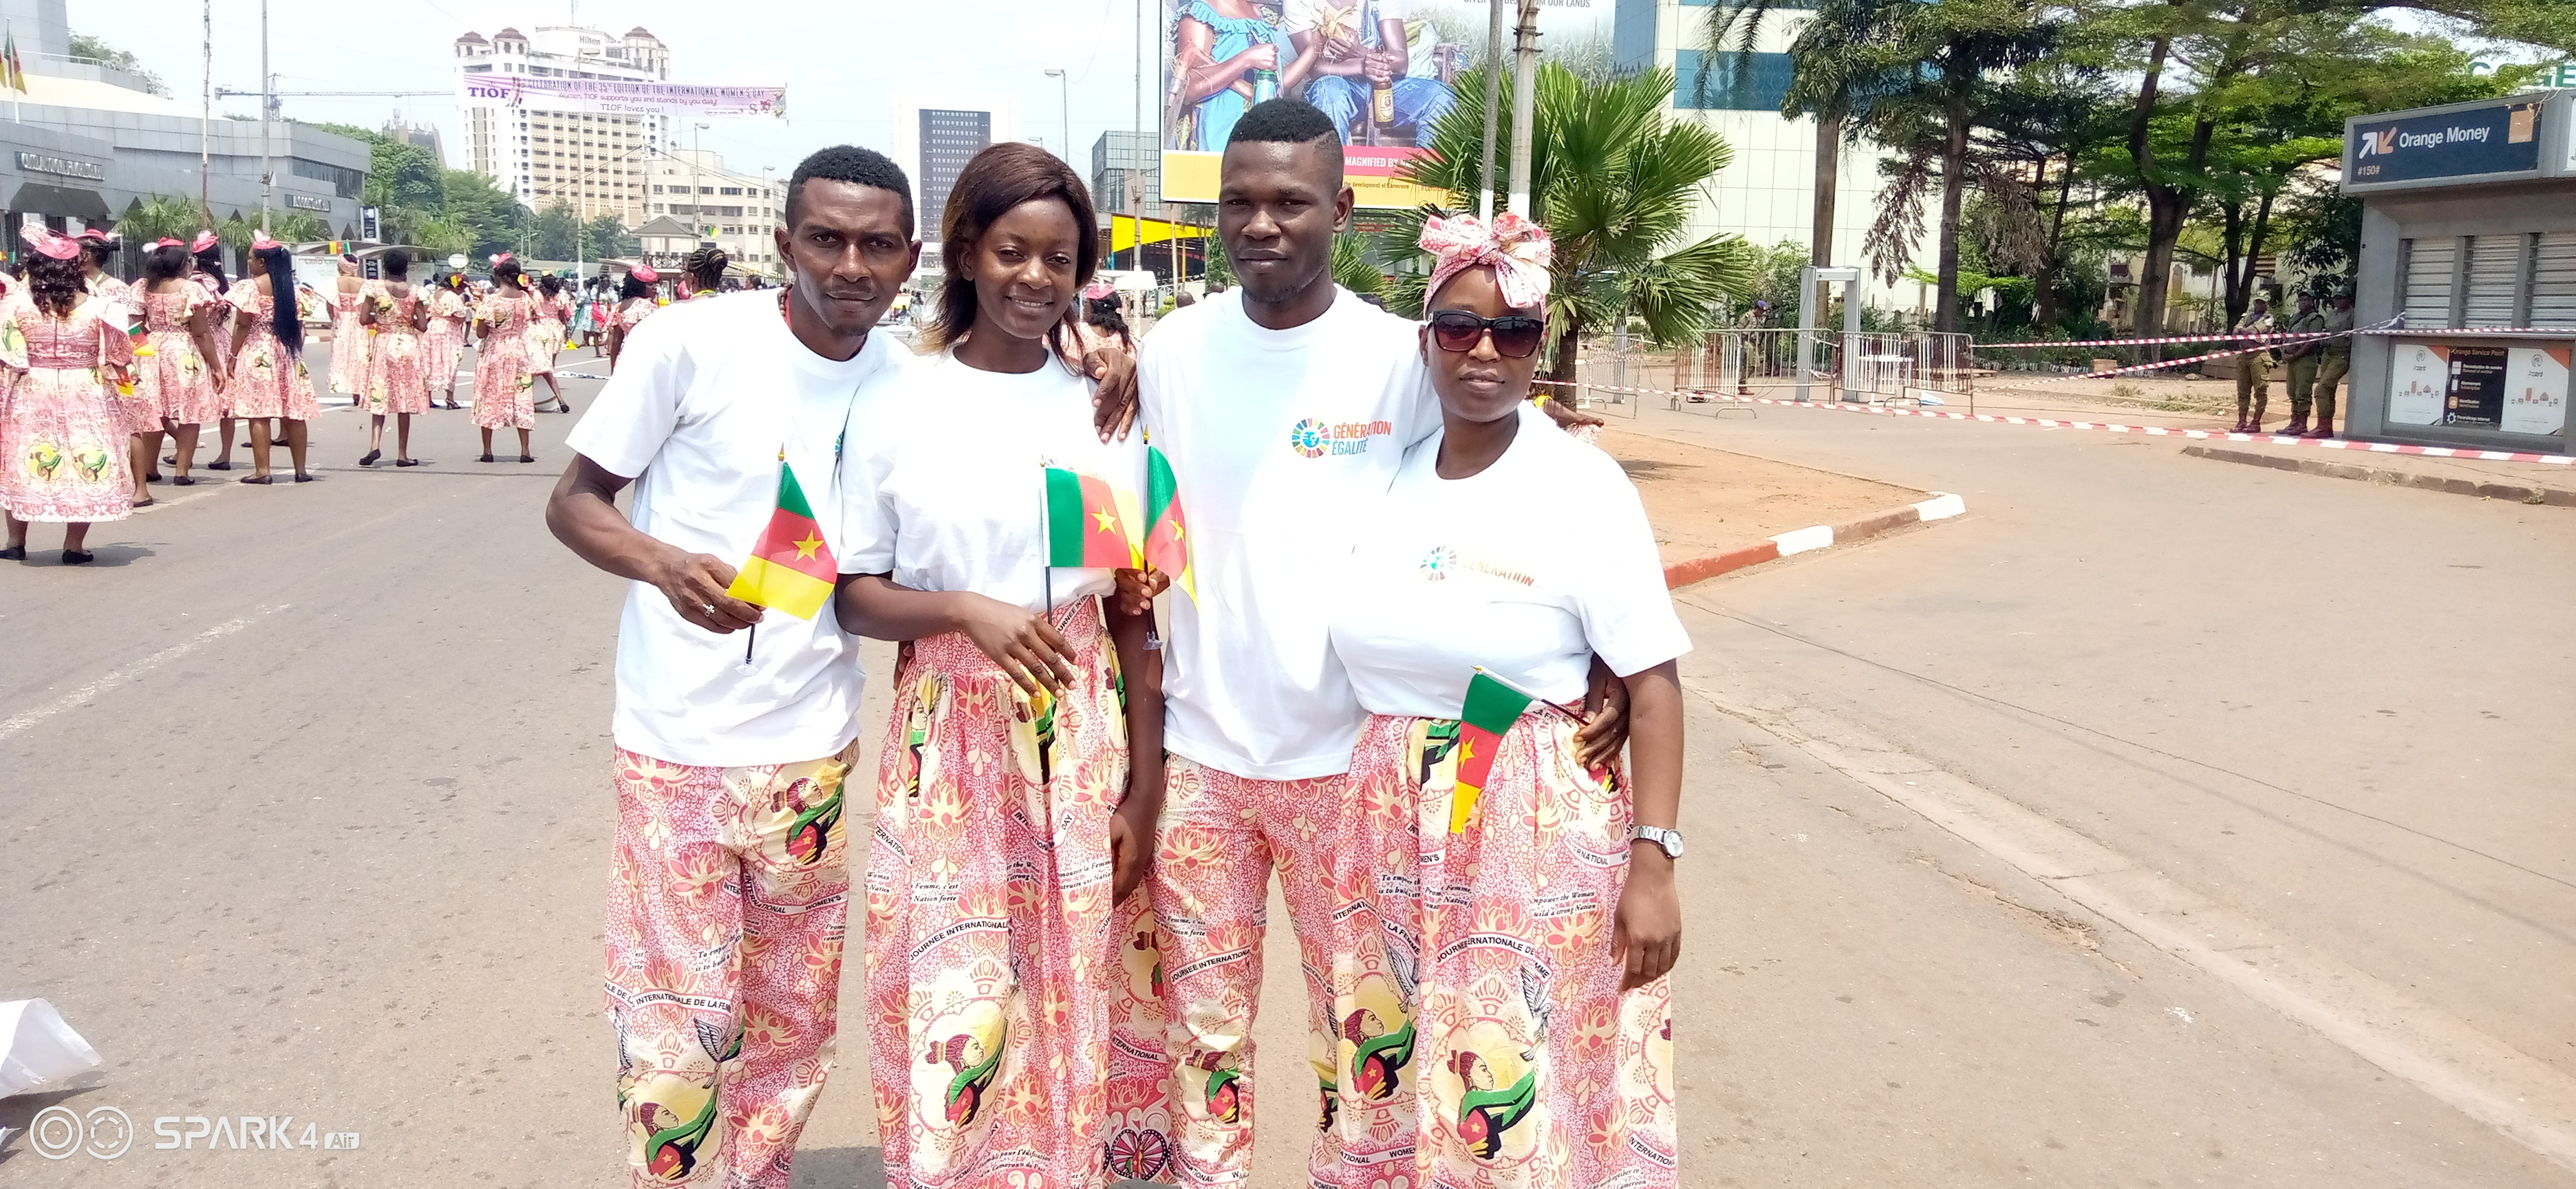 Young leaders manifesting for parity 50-50 during the march of 08th March 2020.